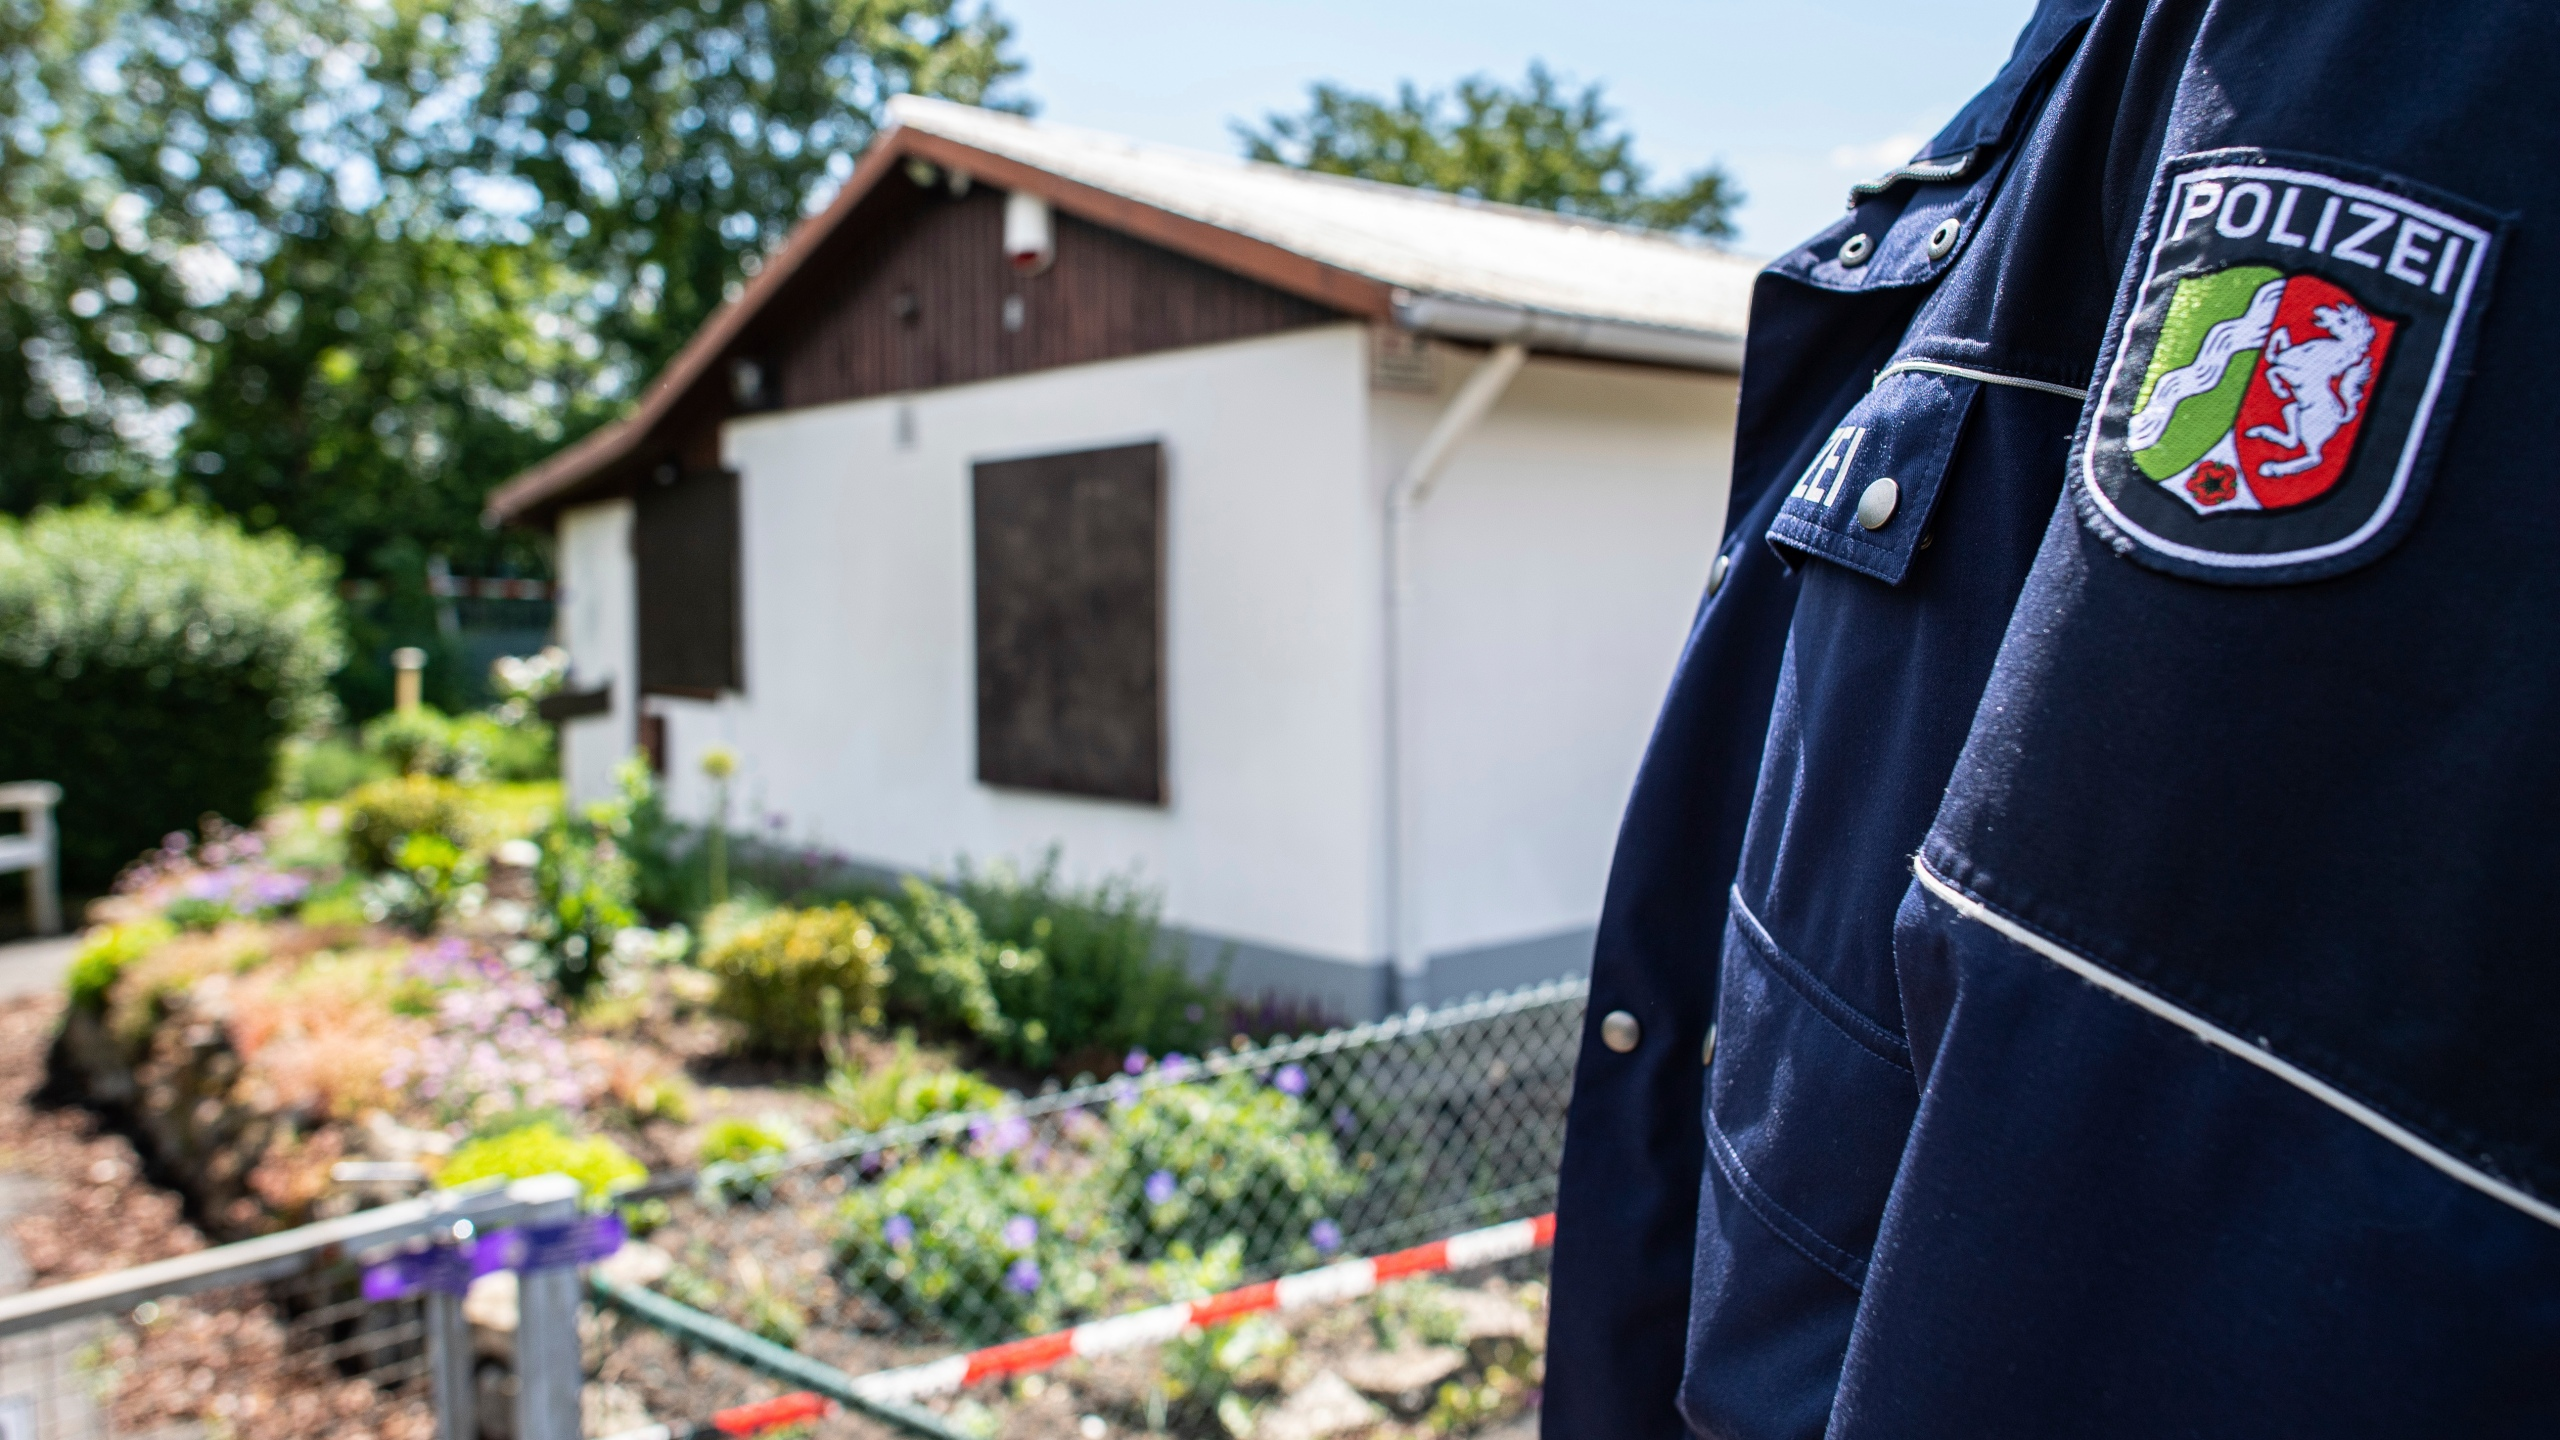 11 People Arrested By German Police For Sexually Abusing Children And Filming The Act